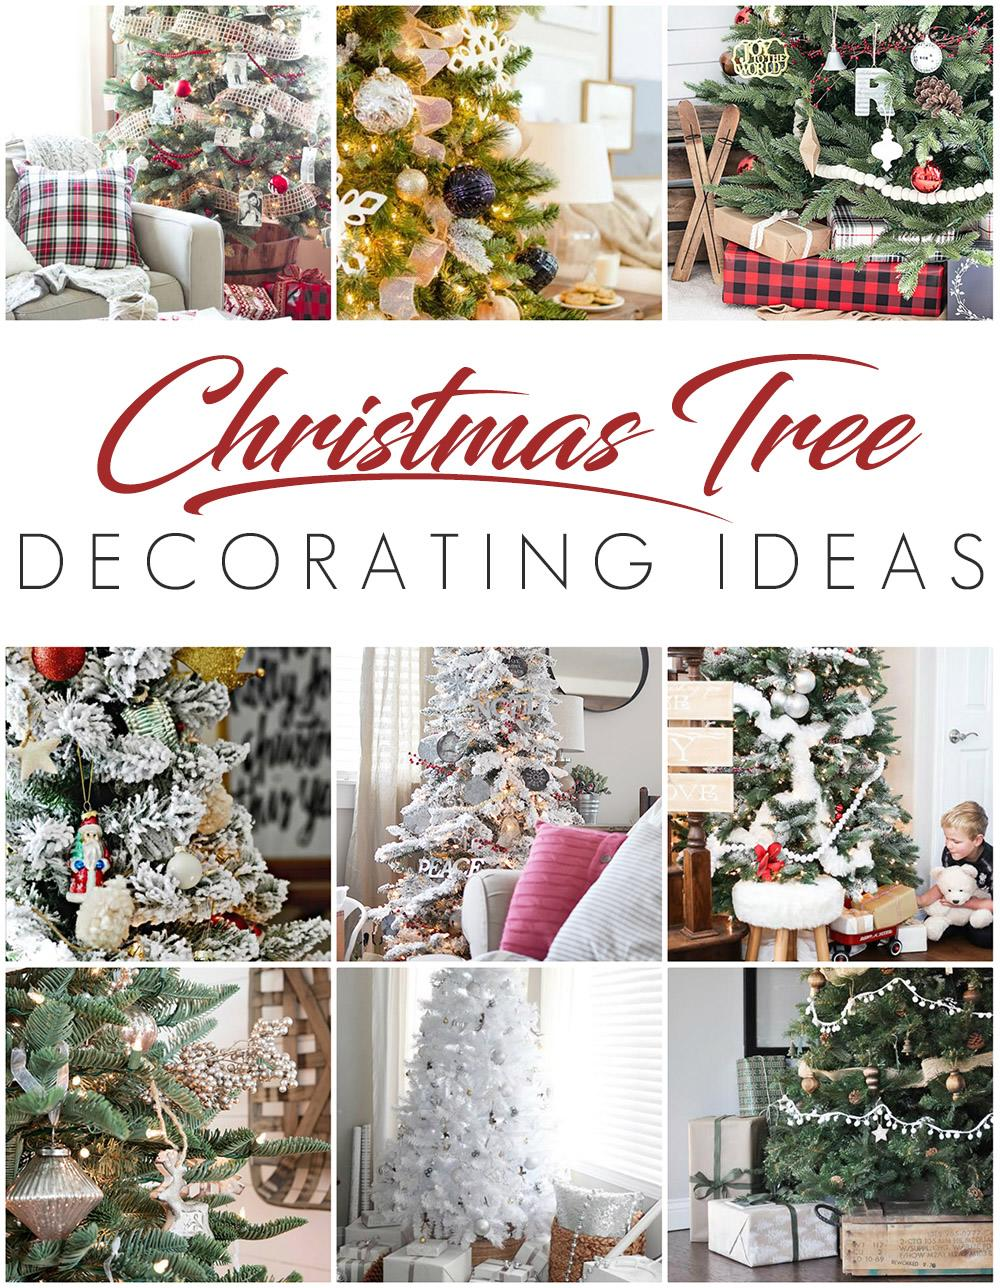 See these 9 beautiful Christmas tree decorating ideas for lots of holiday home decor inspiration! Includes lots of styles including: rustic, neutral, red and white, glam, gold, navy and more!